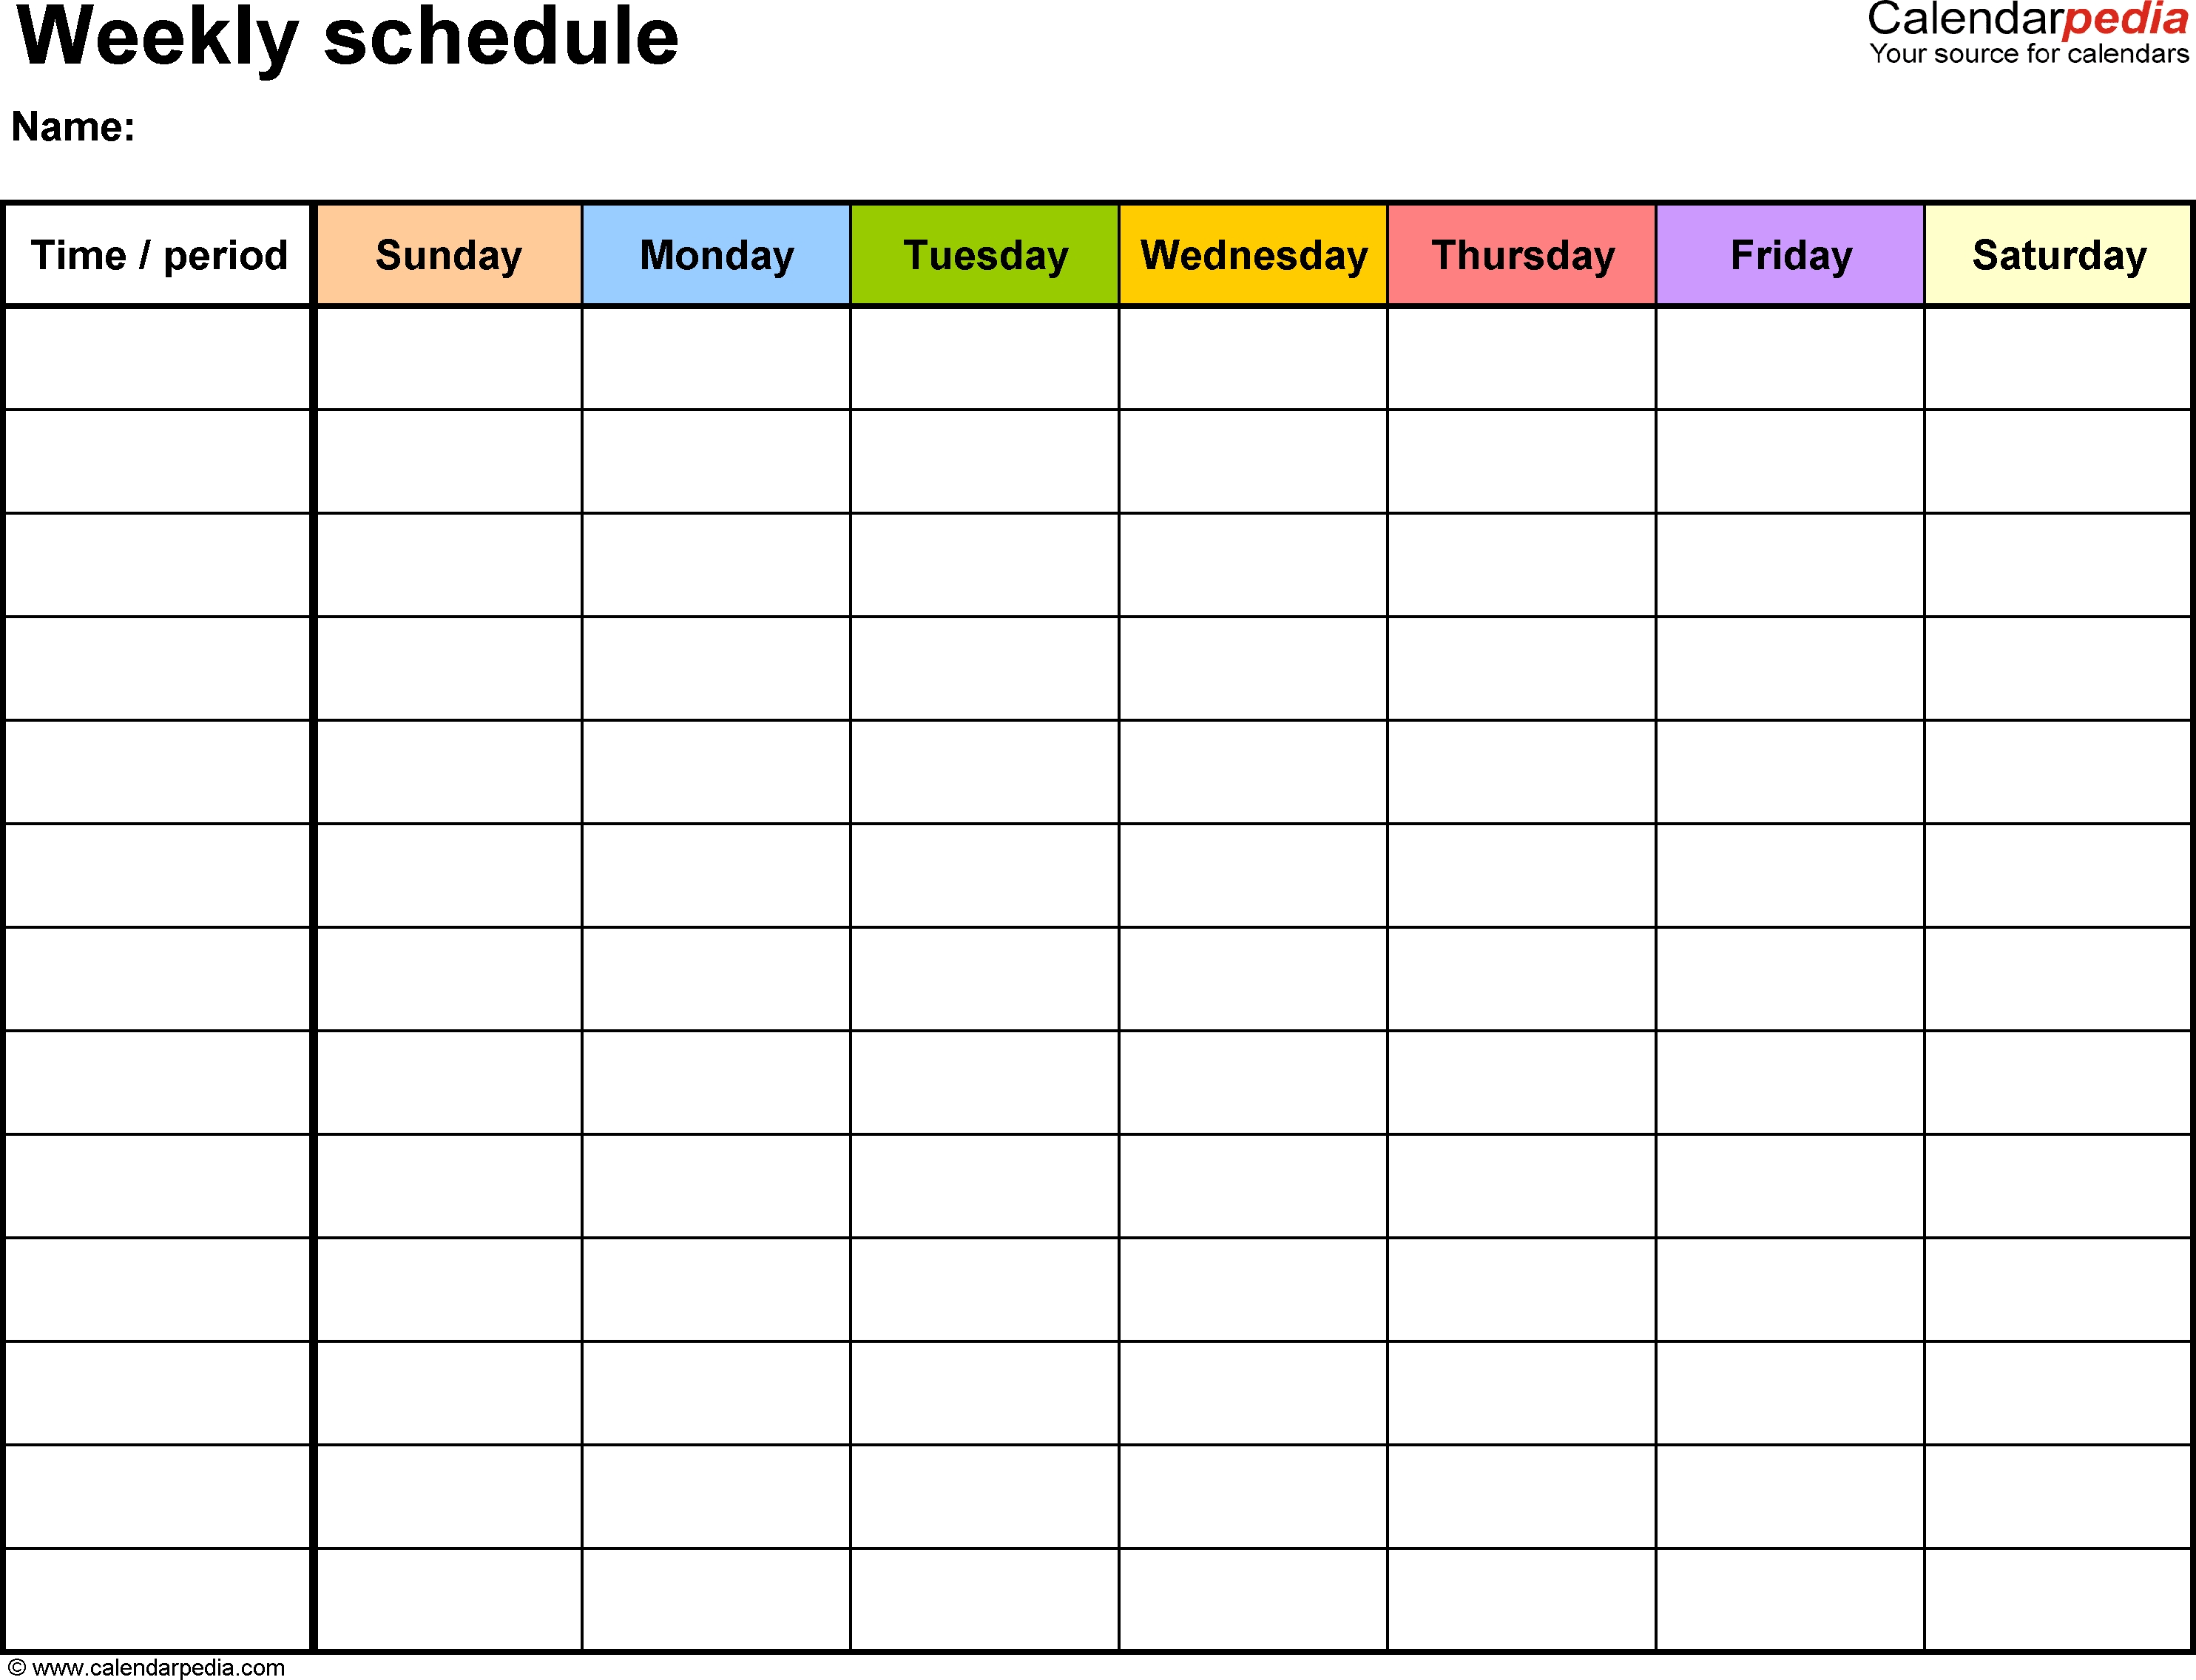 Free Weekly Schedule Templates For Pdf - 18 Templates regarding Large Printable Daily Schedule Template